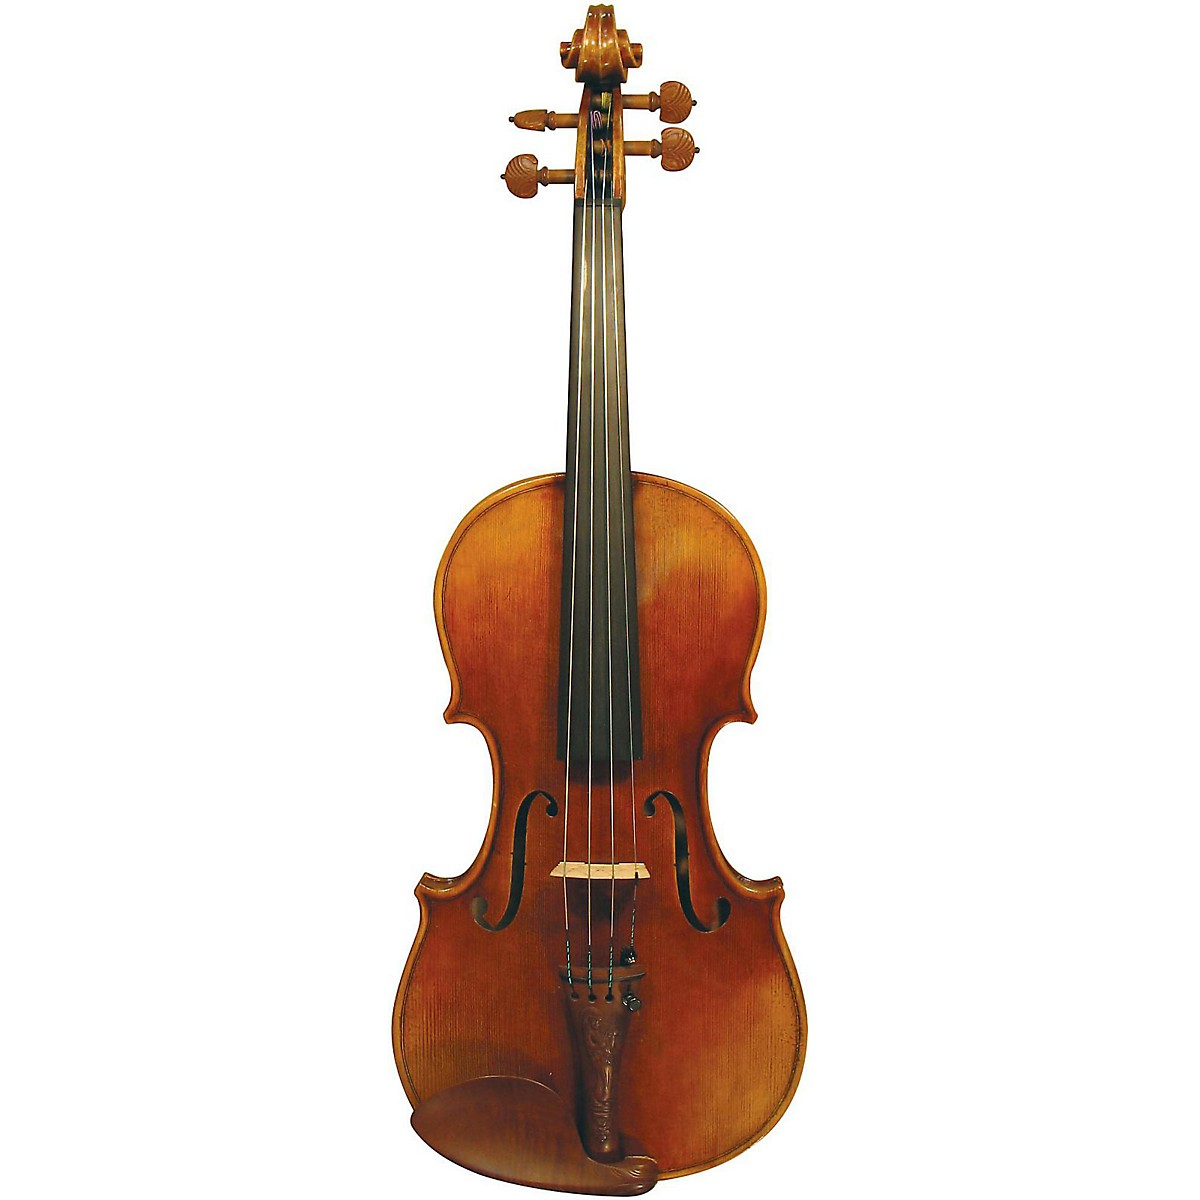 Maple Leaf Strings Chaconne Craftsman Collection Violin